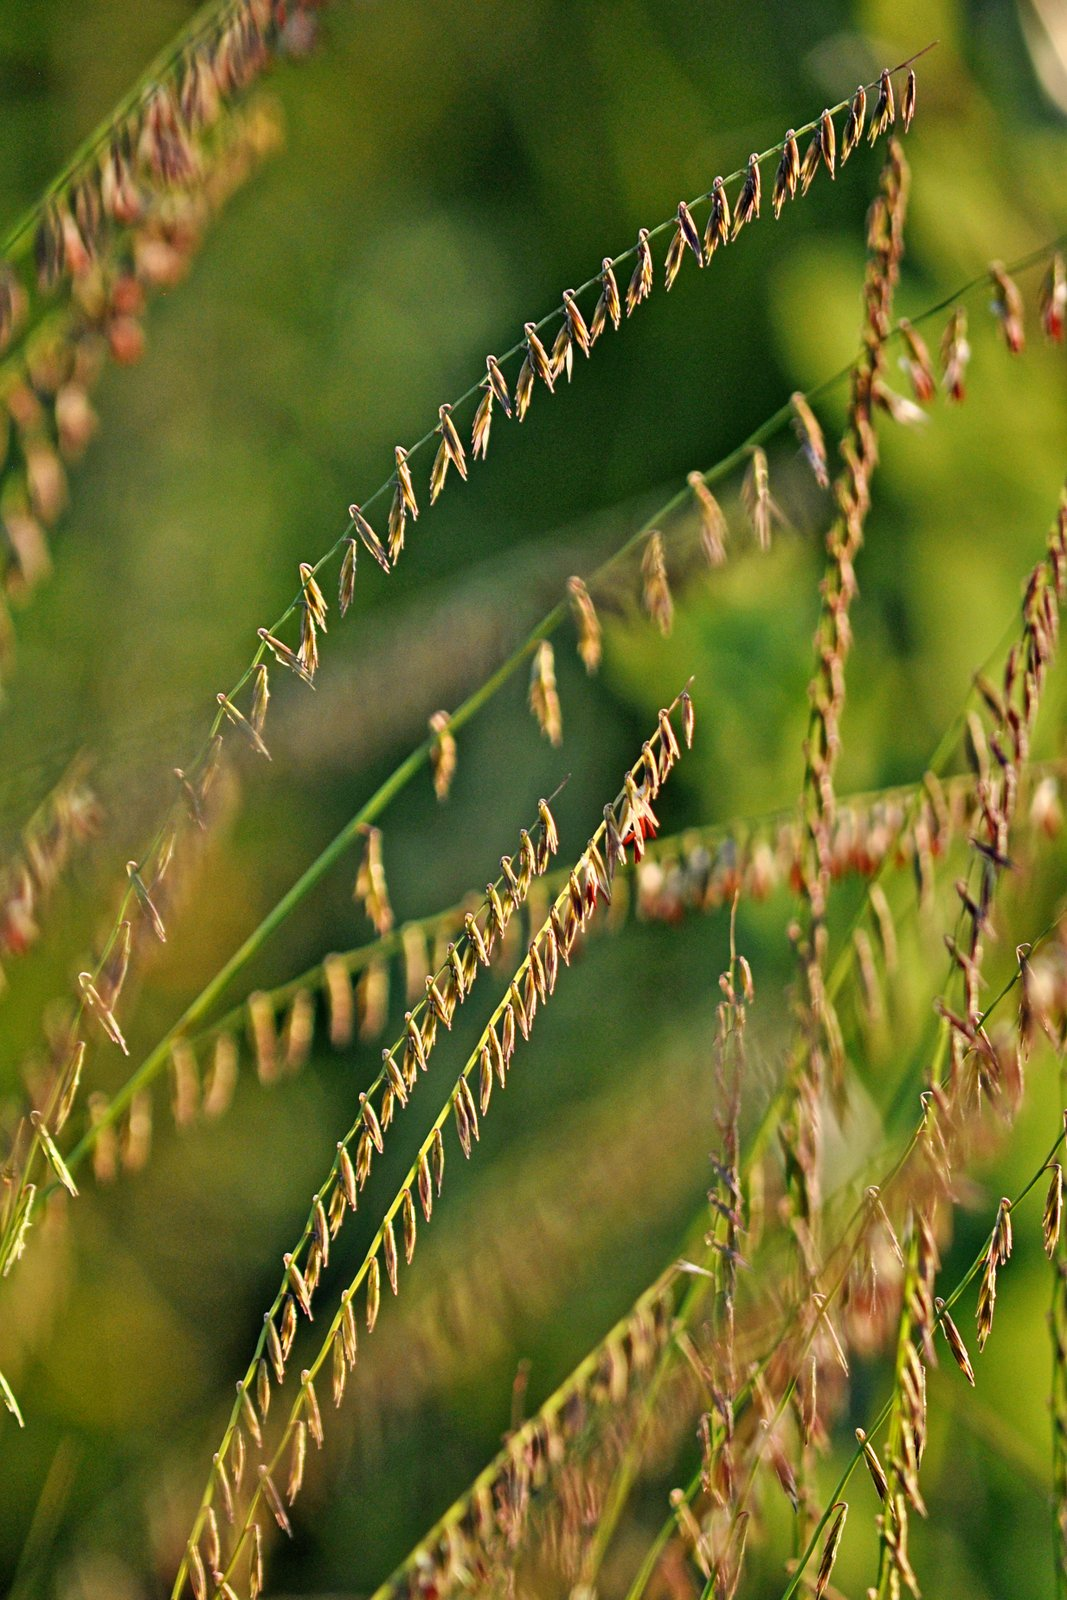 Side-oats grama grass